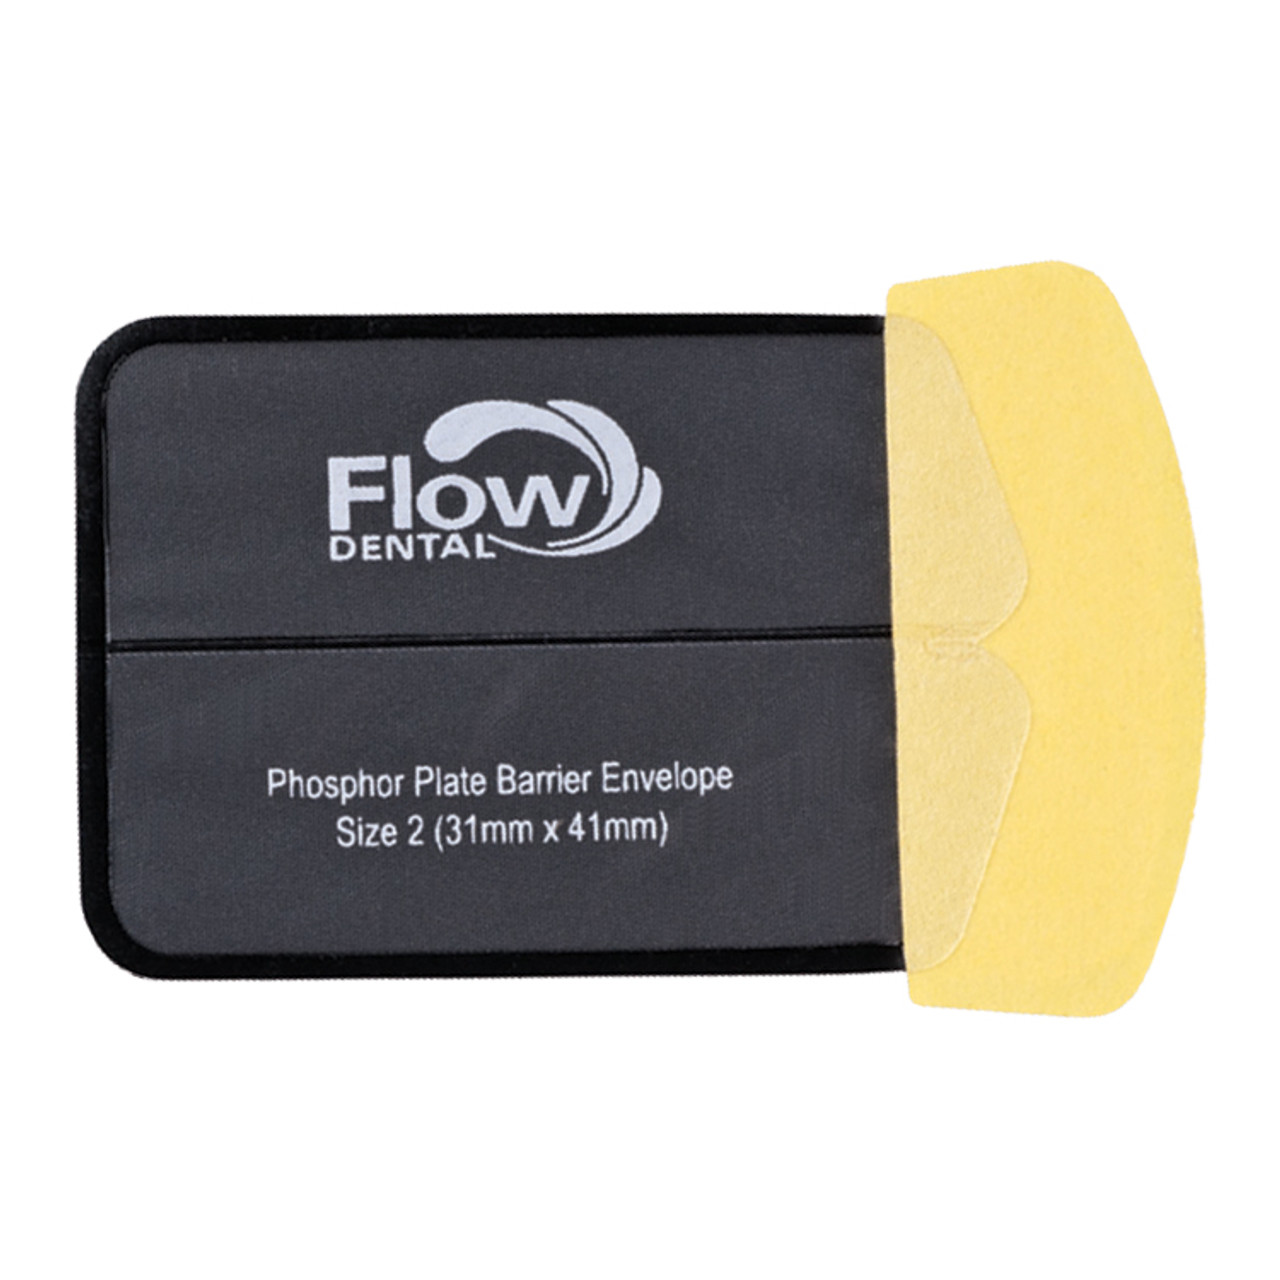 Flow Dental - Safe in.Nin. Sure Deluxe Envelopes - Size 3 - 300/bx